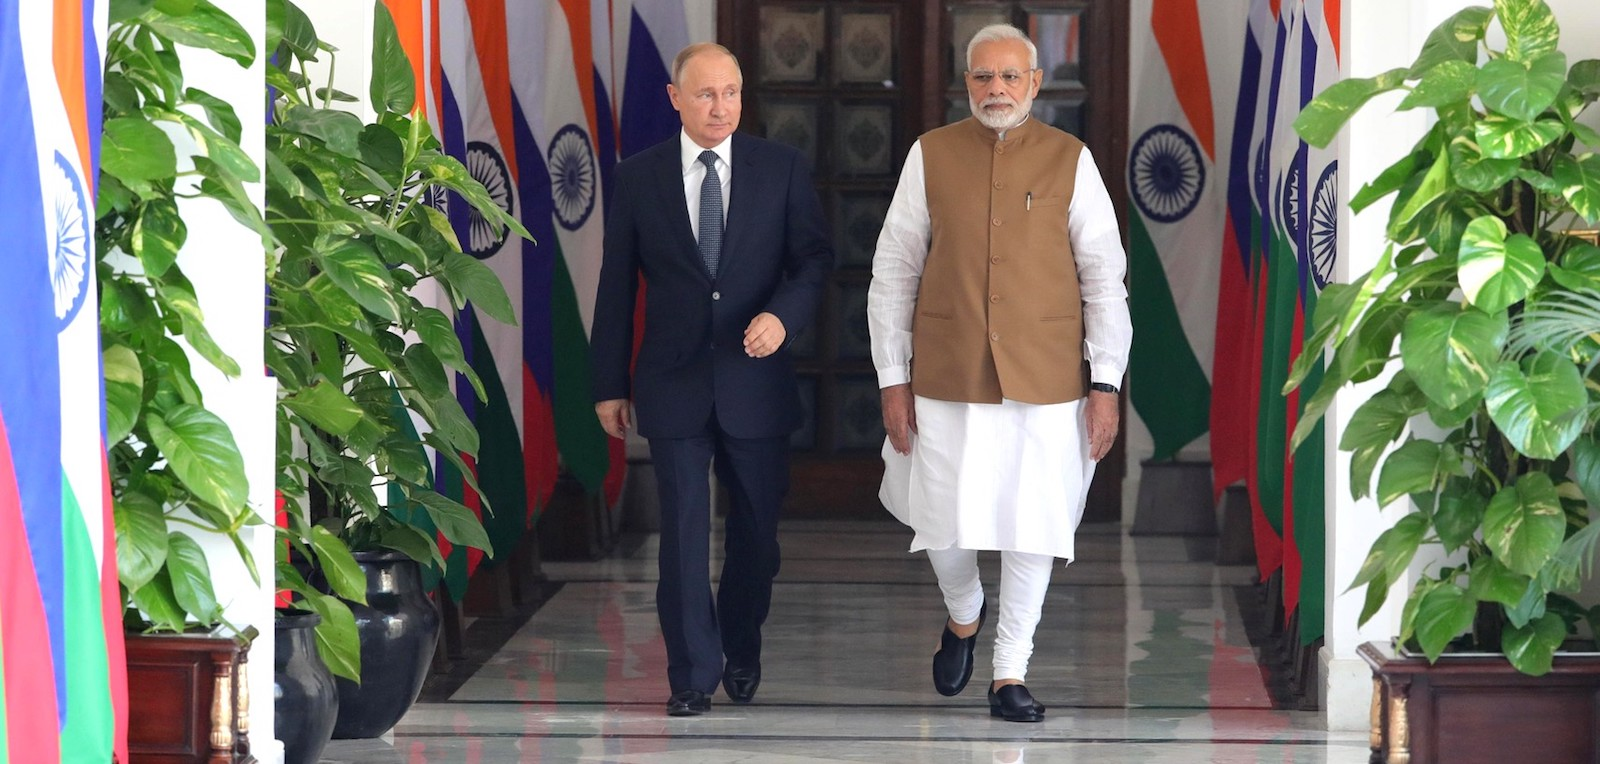 It seems clear that the Indo-Russian relationship is founded on a sturdy basis of mutual needs and interests (Photo: Kremlin.ru)